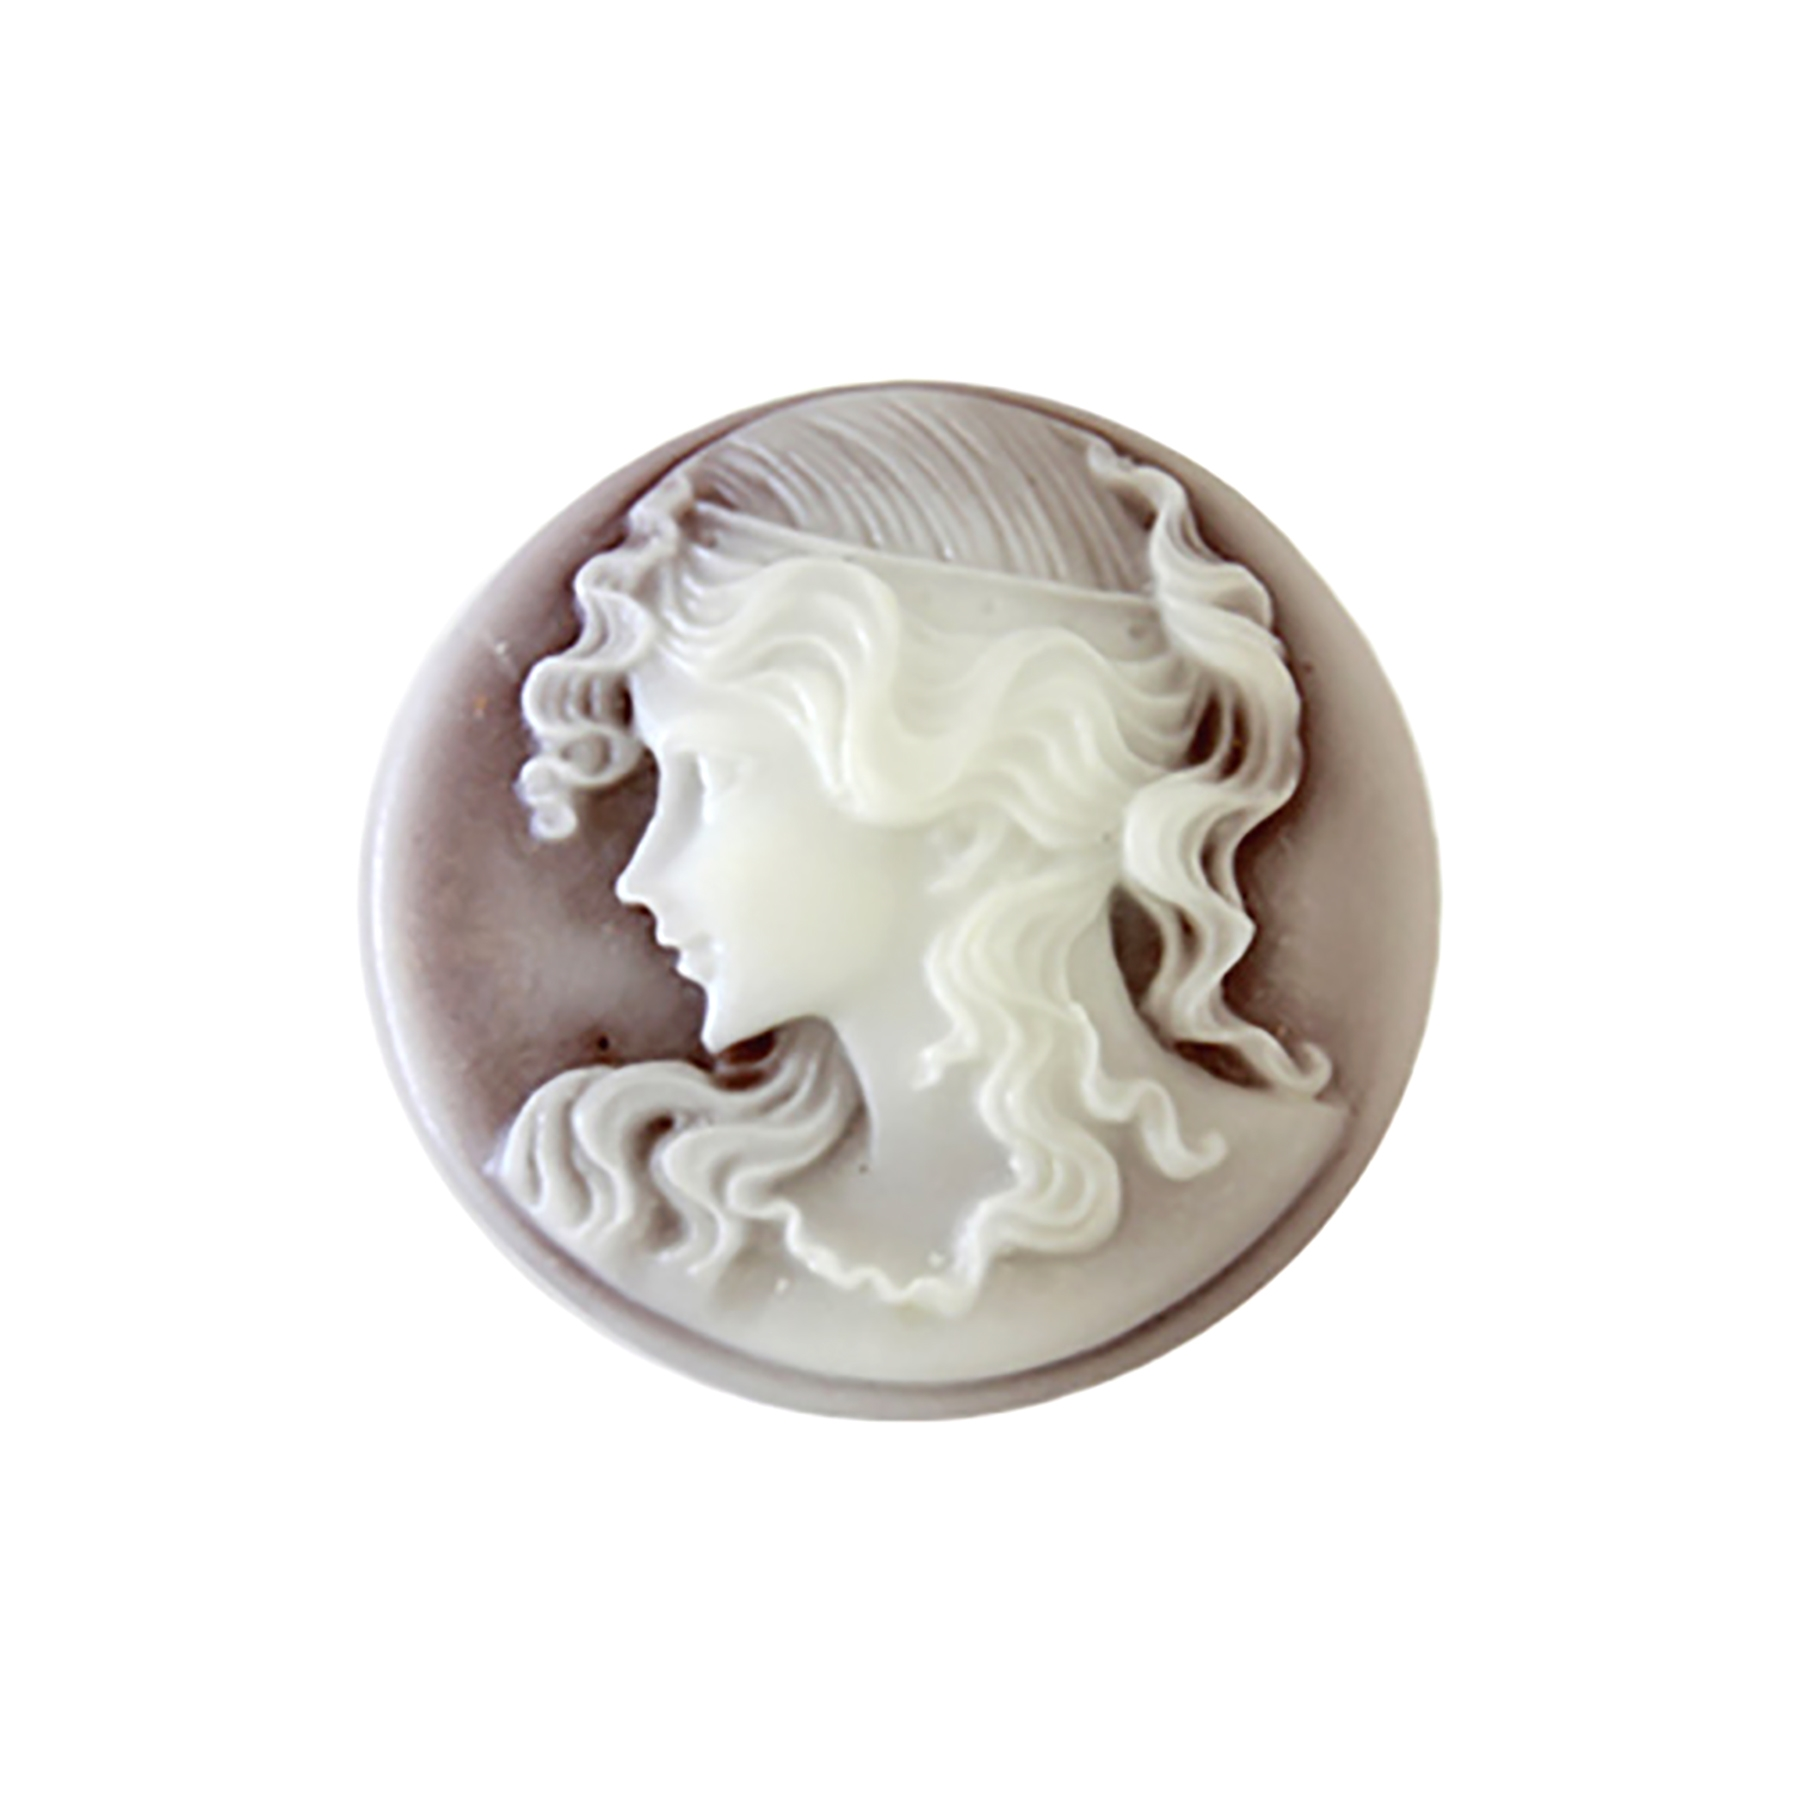 young Victorian lady cameo, cameo, resin jewelry, ivory, ivory on dark brown, 25mm, imported resin, Victorian, lady cameo, Victorian lady, round cameo, B'sue Boutiques, jewelry supplies, jewelry making, jewelry findings, vintage supplies, 08811